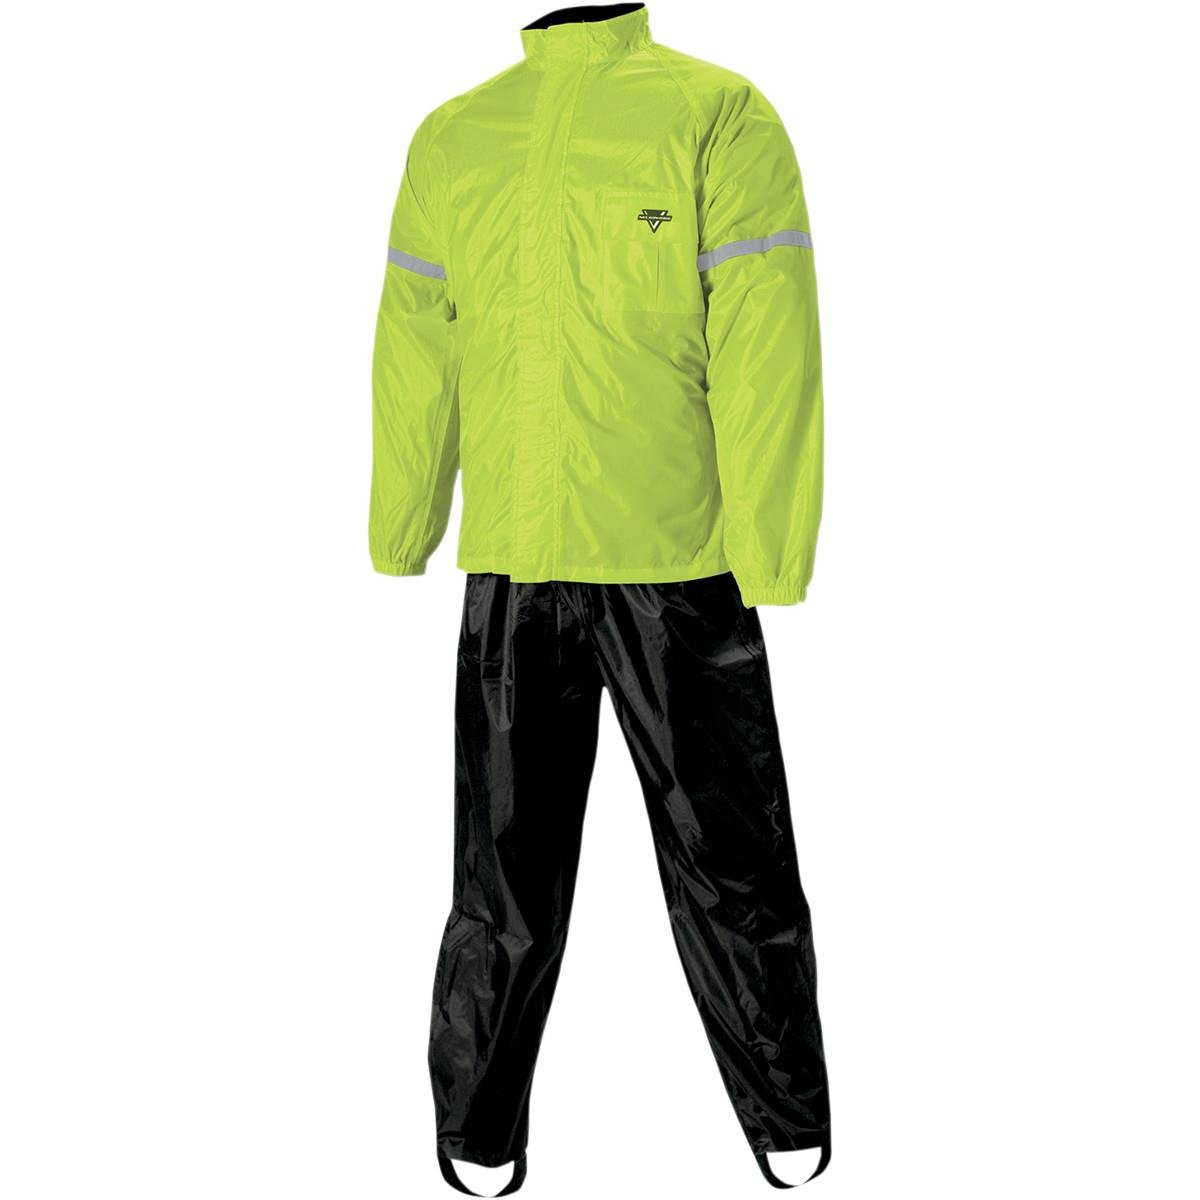 Nelson Rigg WeatherPro Rainsuit, 2 Piece (Black/Hi-Visibility Yellow, Medium)